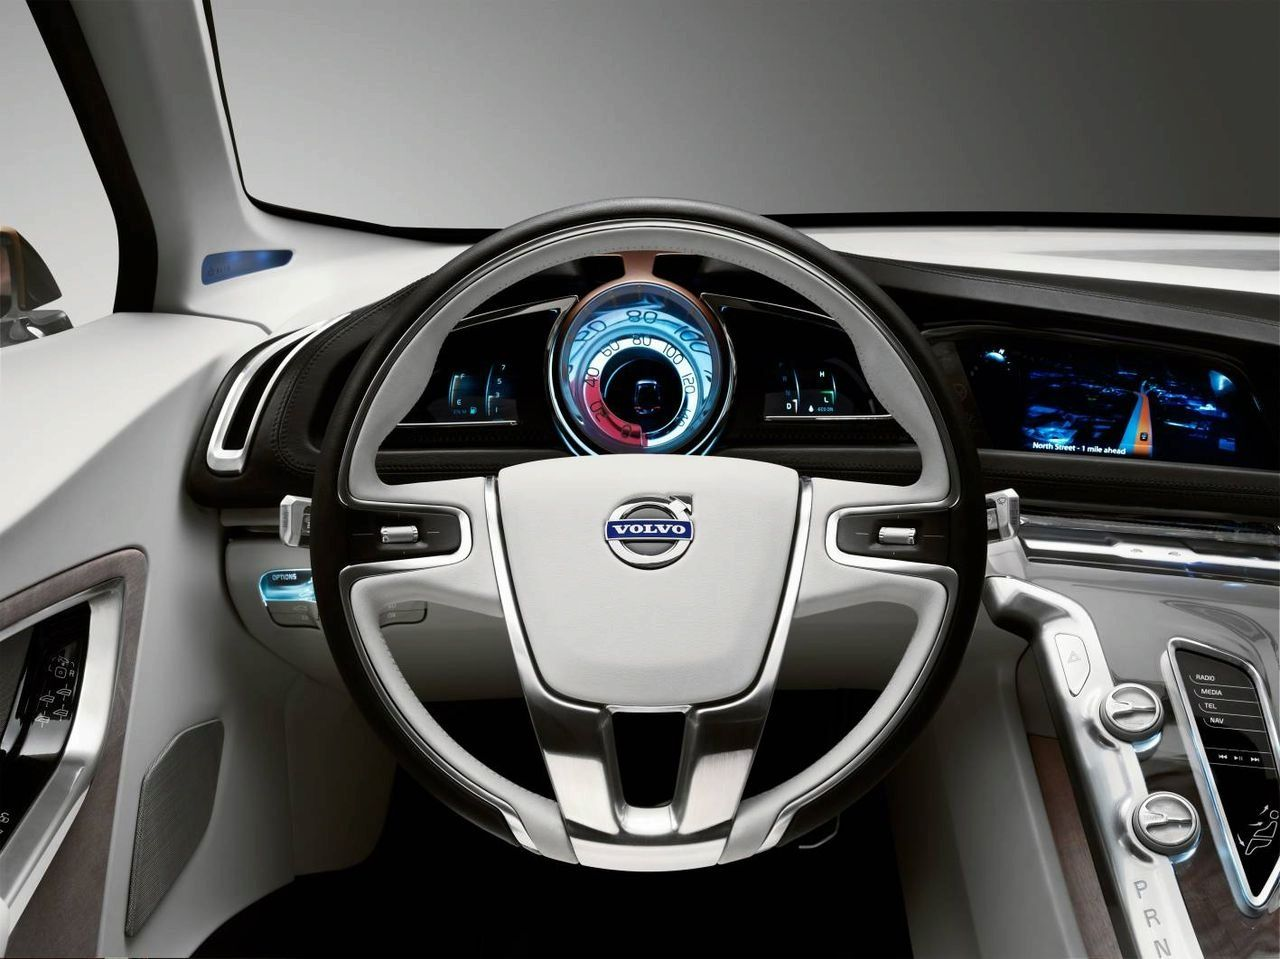 Toys for car dashboard  Vehicle Design Dashboards Details Interiors   Automotive